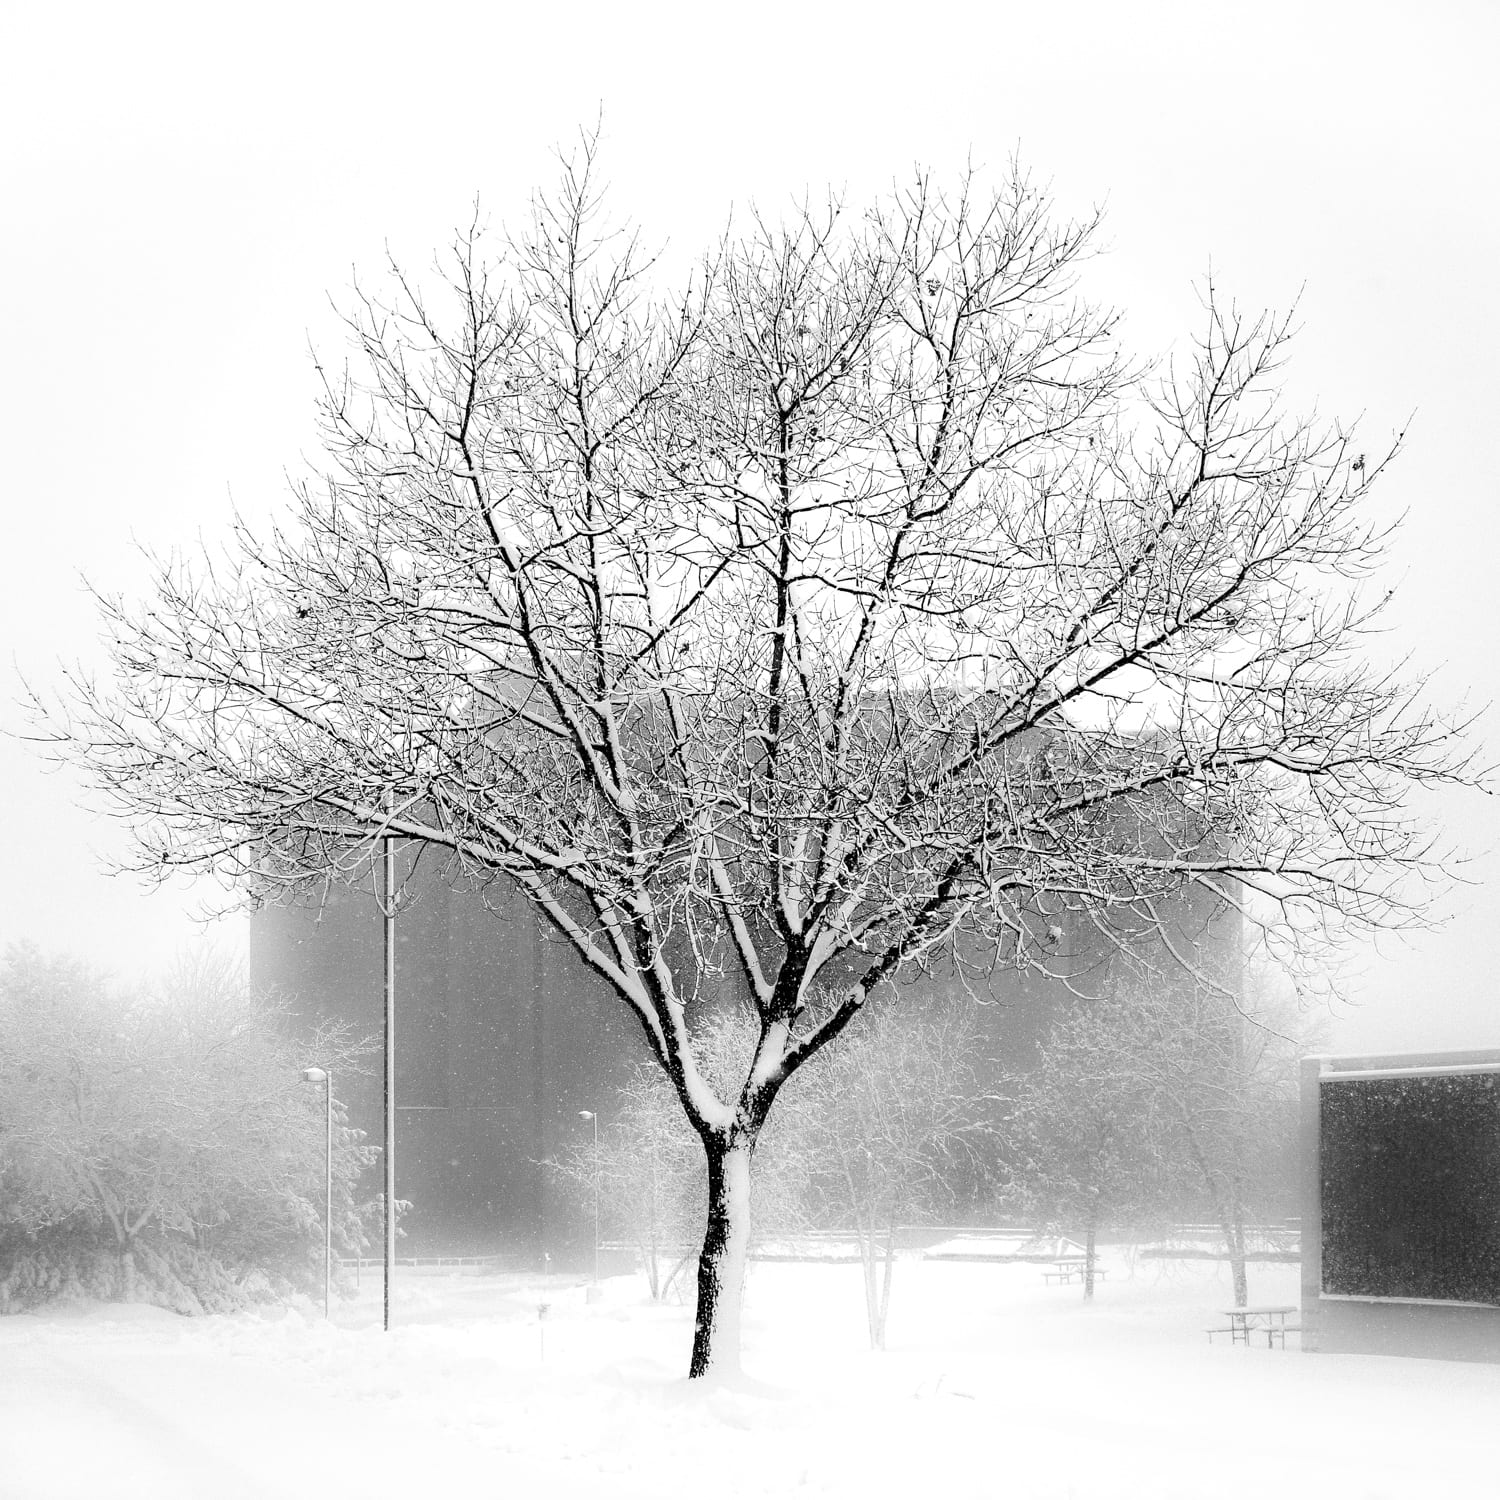 2 - Snowy Day on Campus